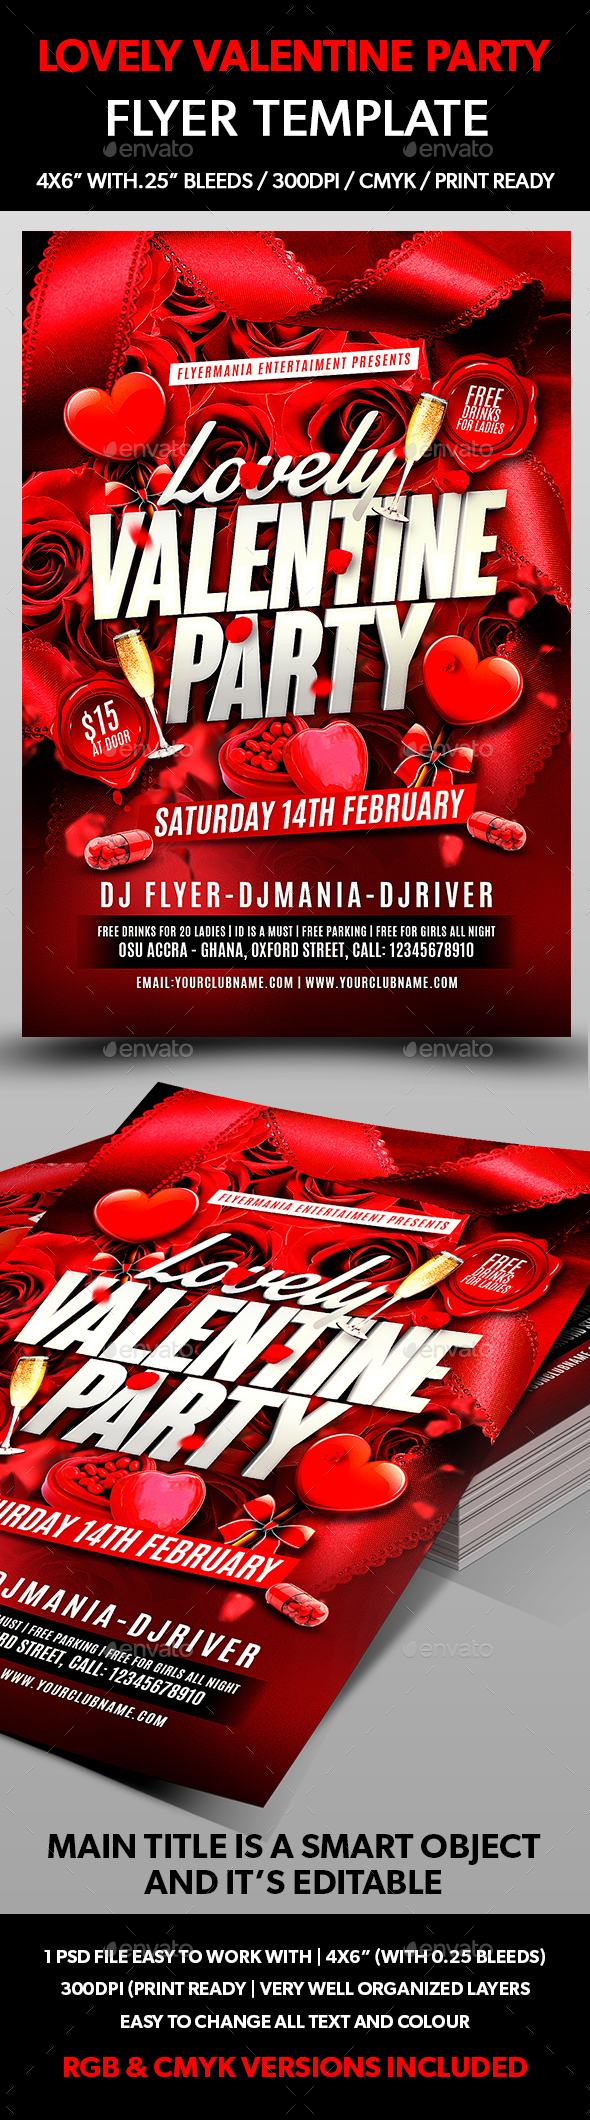 Lovely Valentine Party Flyer Template - Flyers Print Templates